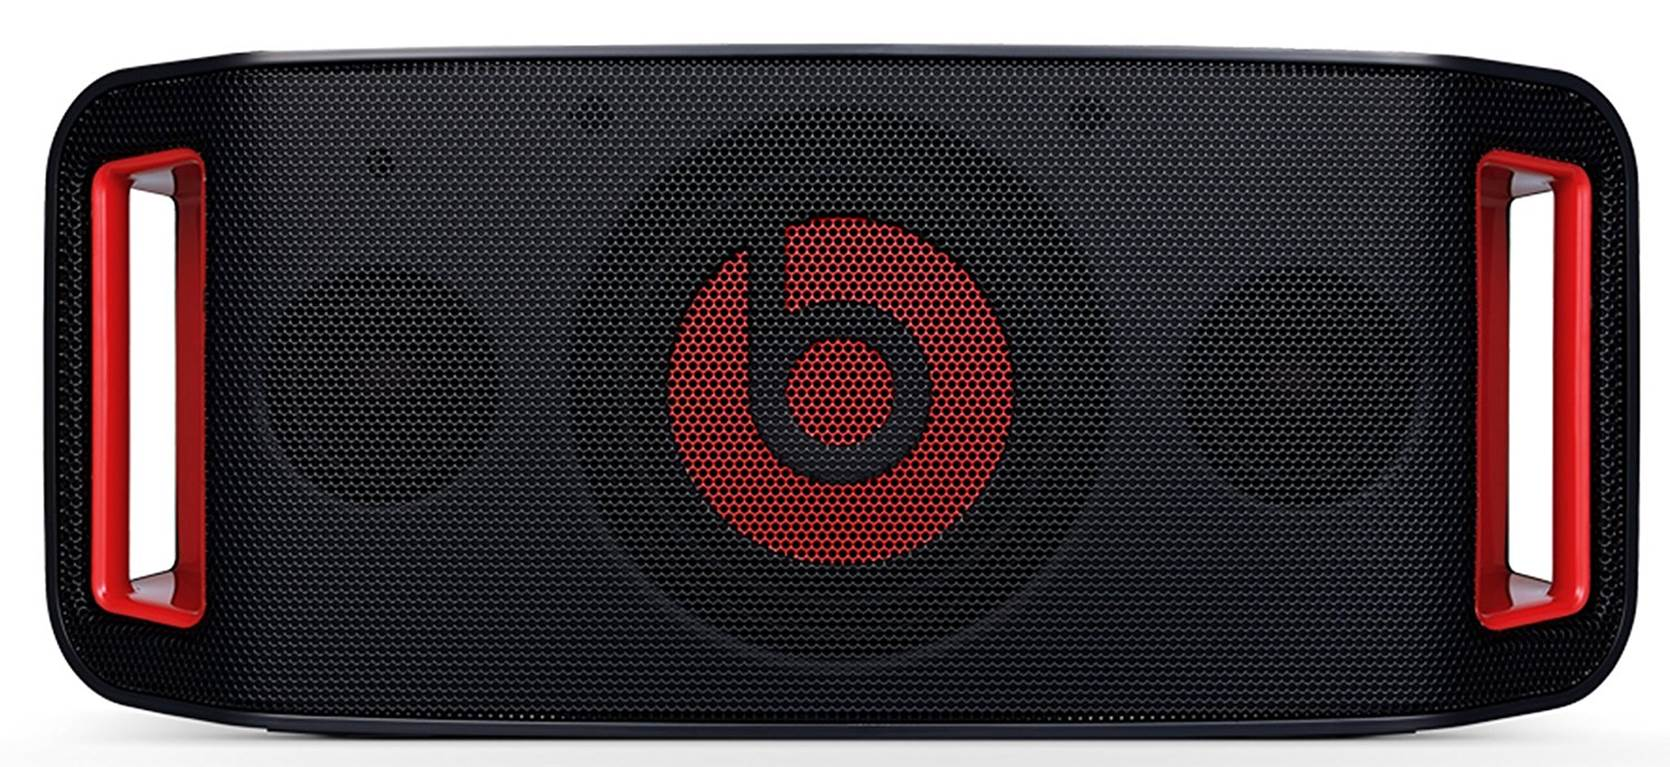 BeatBox by Dr. Dre Portable Bluetooth Speaker